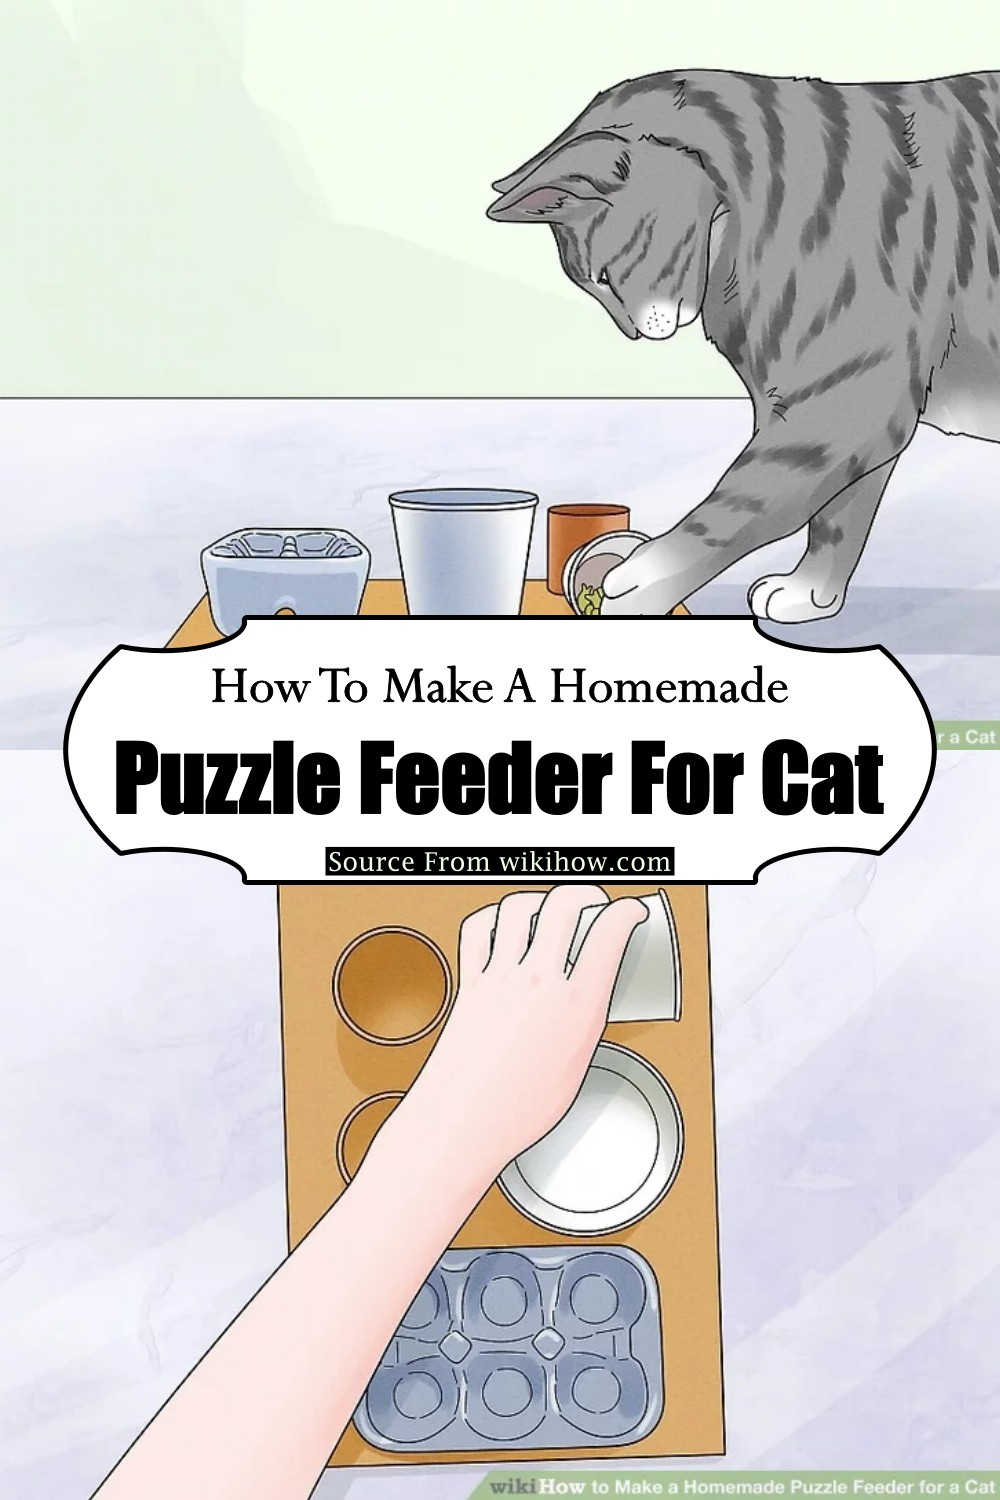 How To Make A Homemade Puzzle Feeder For Cat